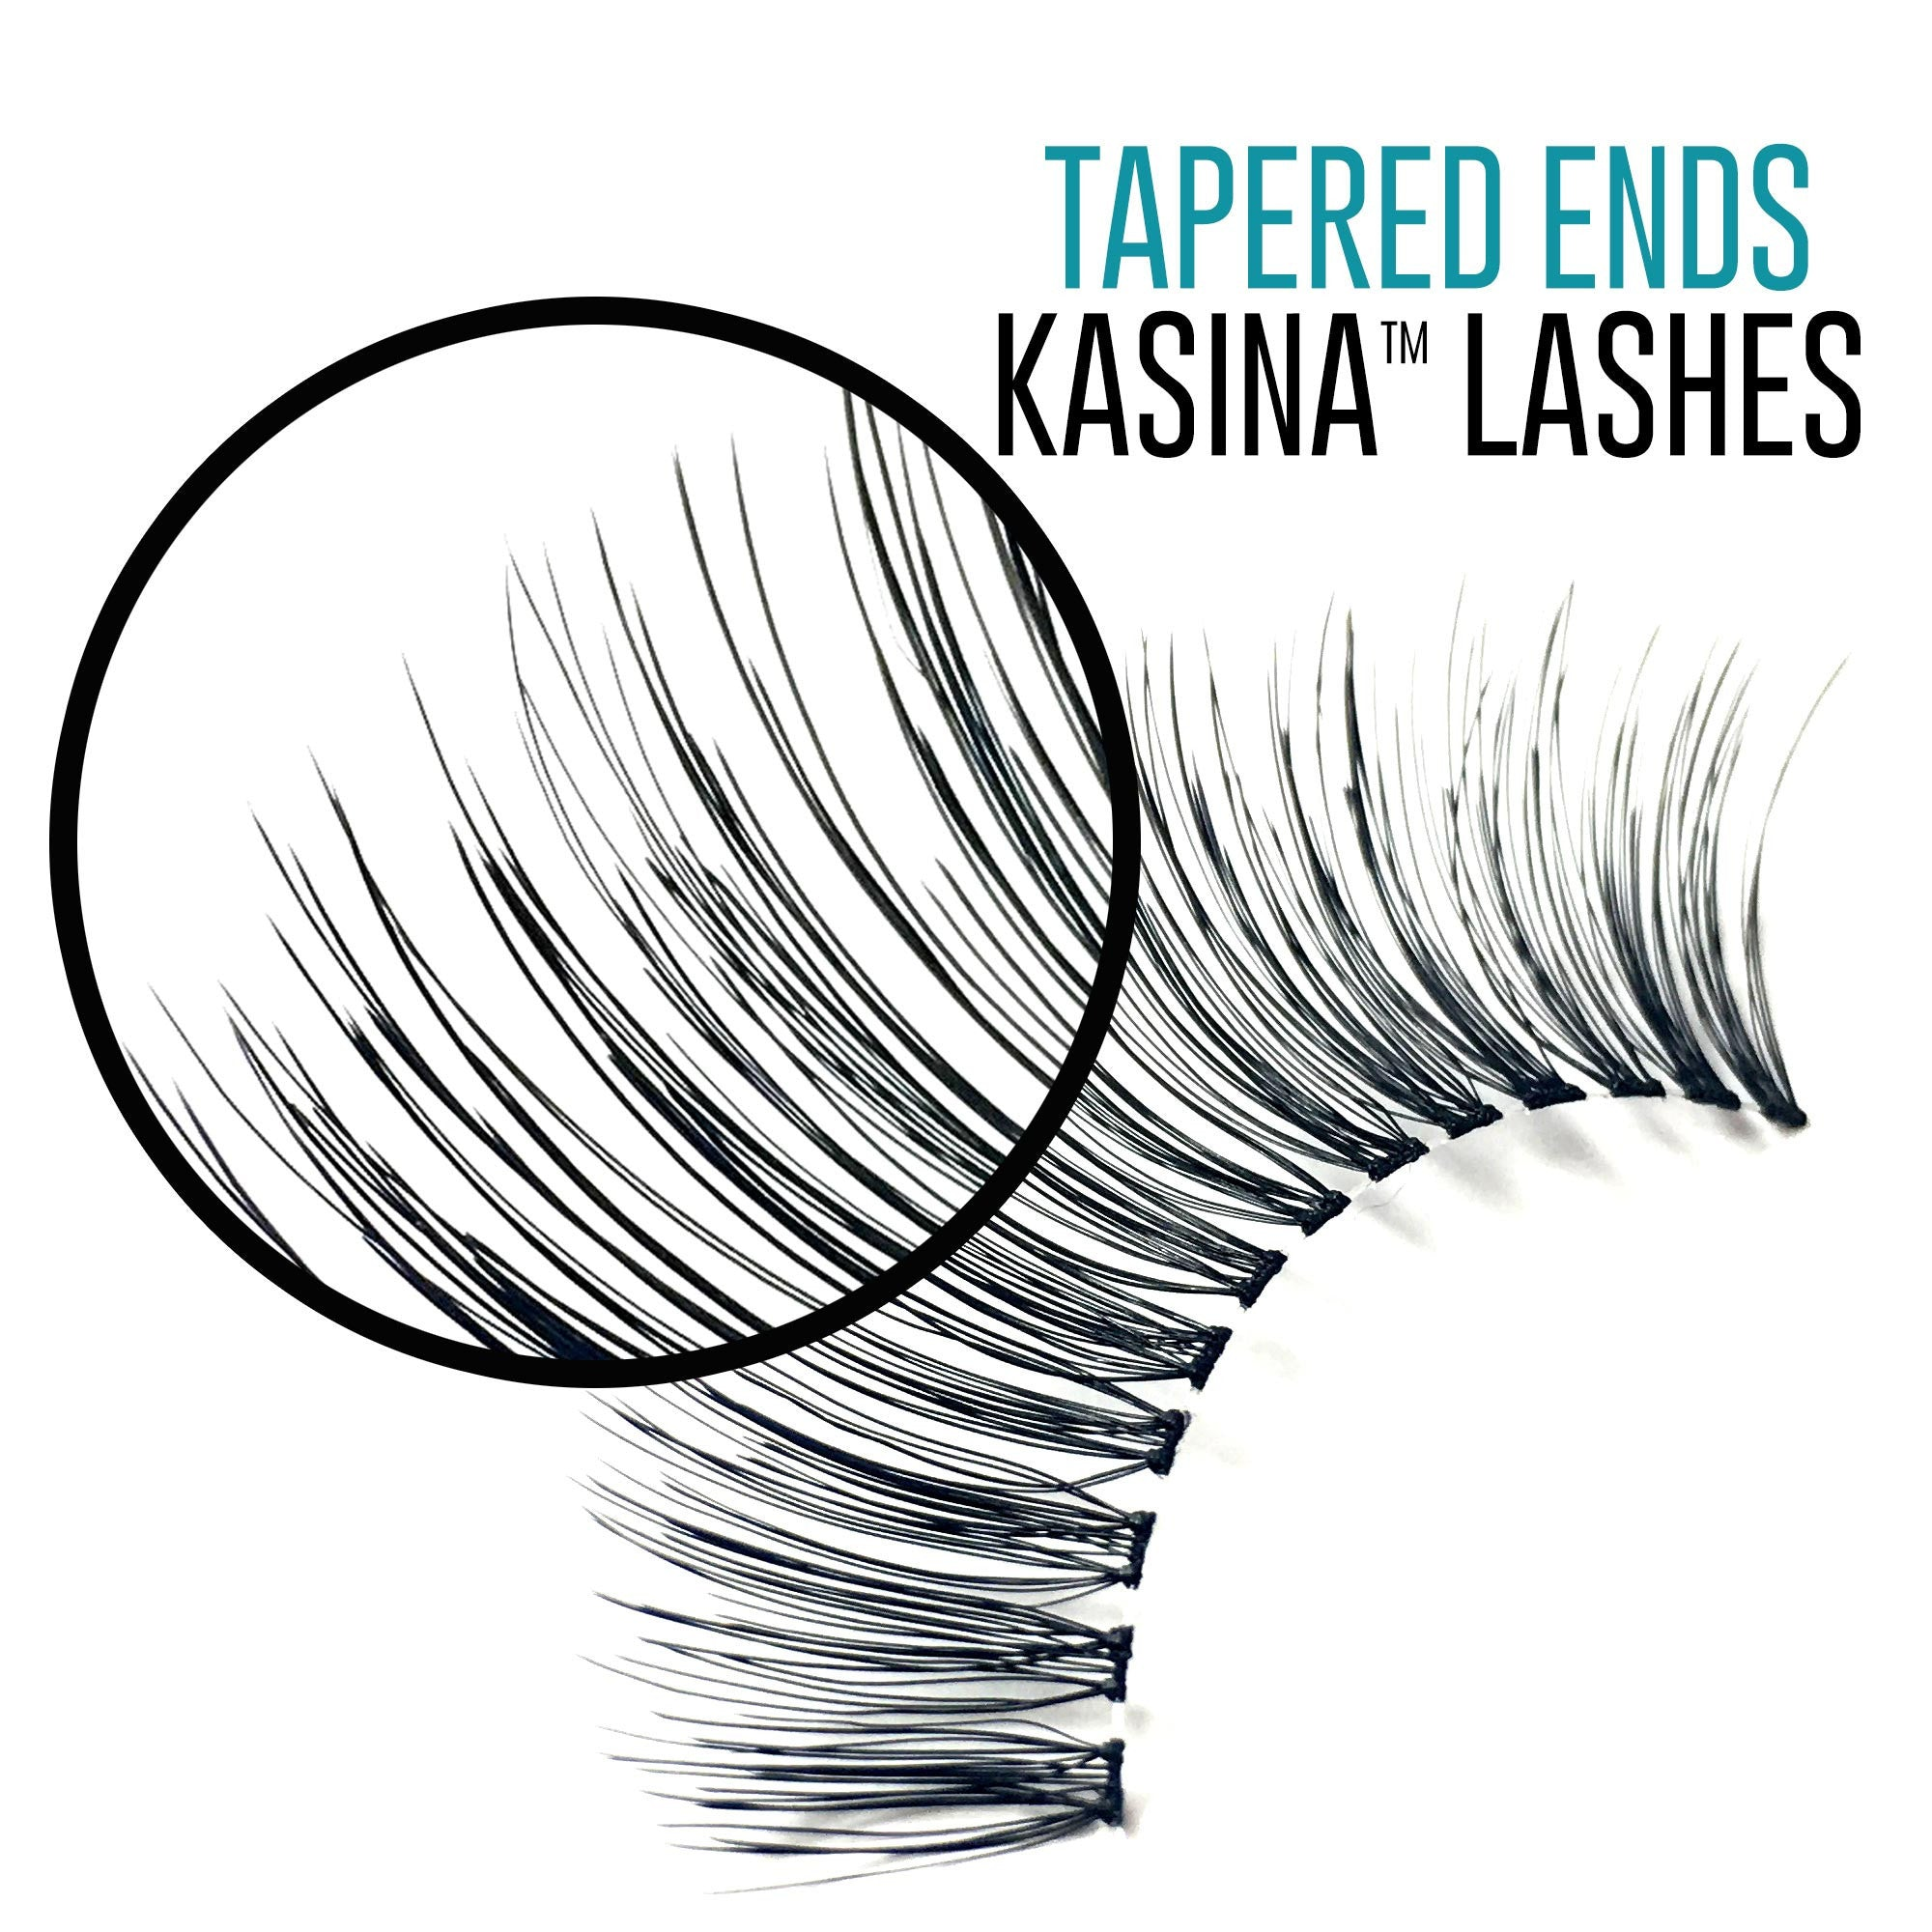 False Lashes - Professional Tapered ends lashes #217T - Lira Galore's Choice - KASINA #217